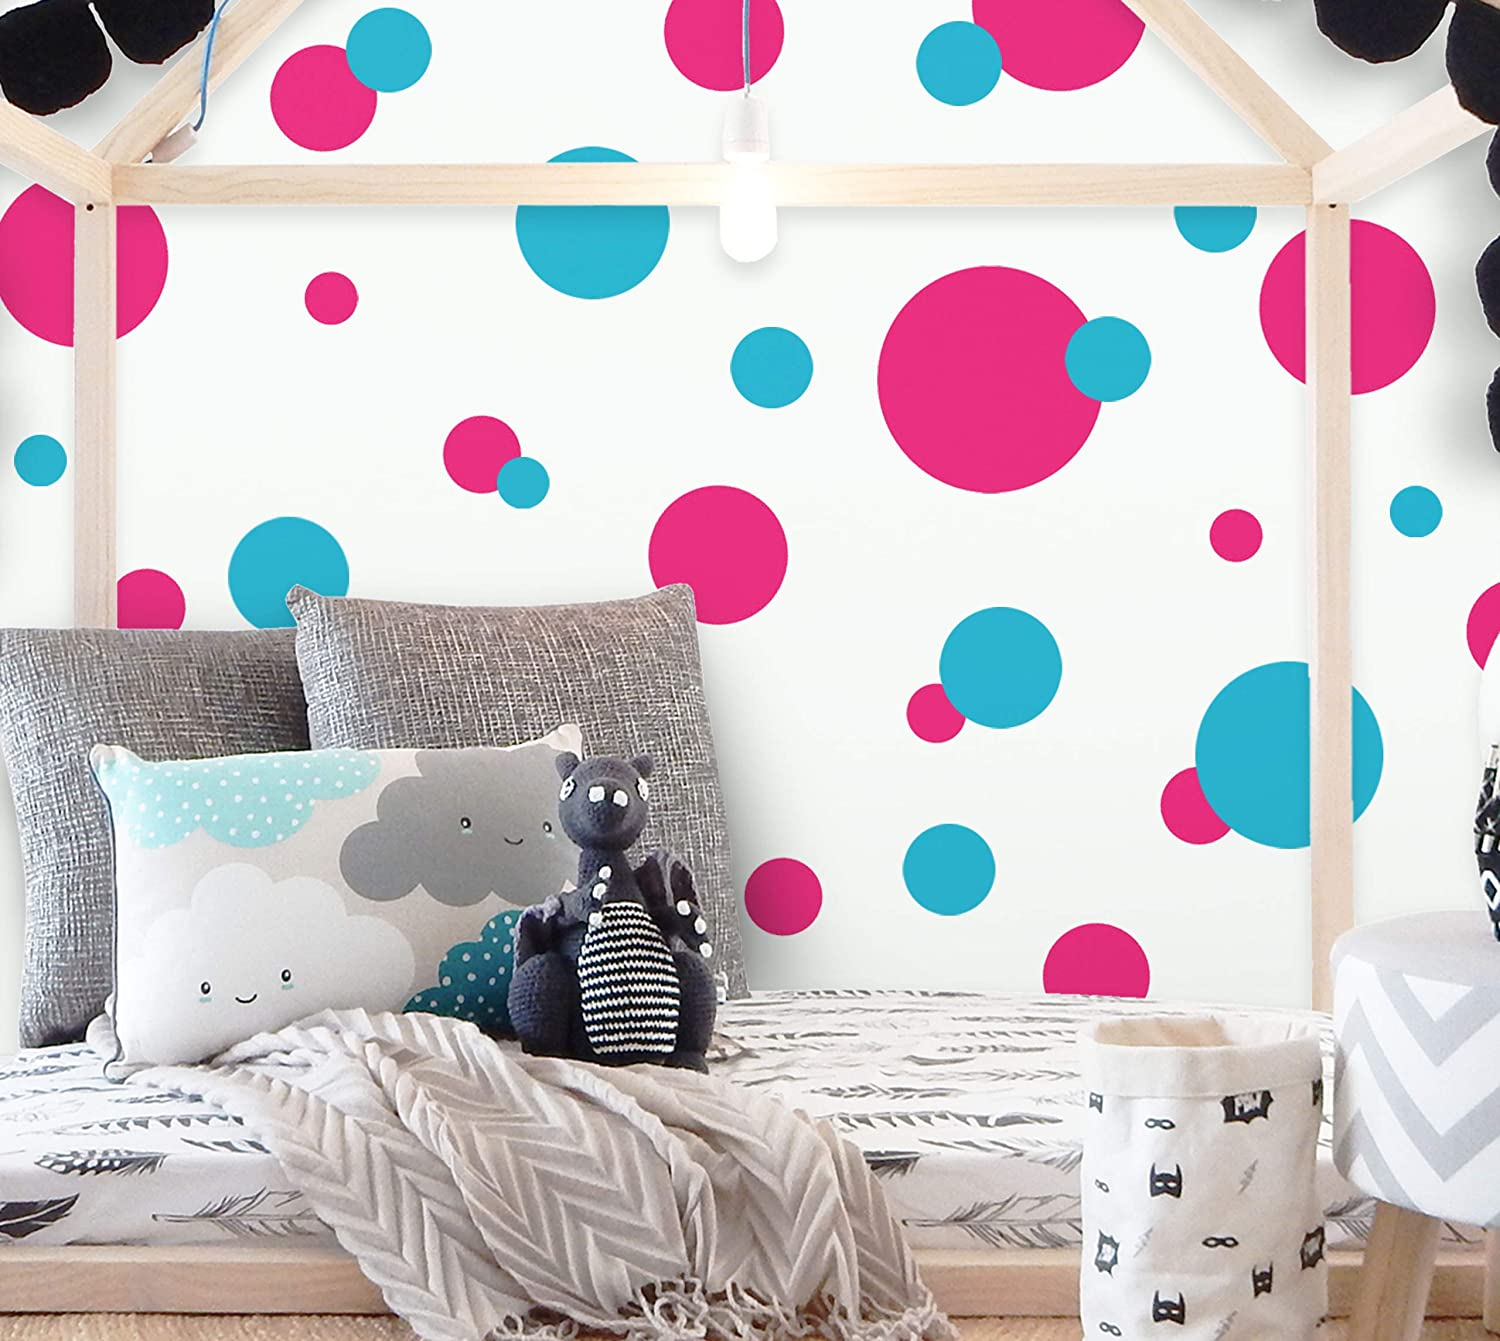 Amazon Com Polka Dot Decals For Girls Room Walls Hot Pink Teal Home Kitchen